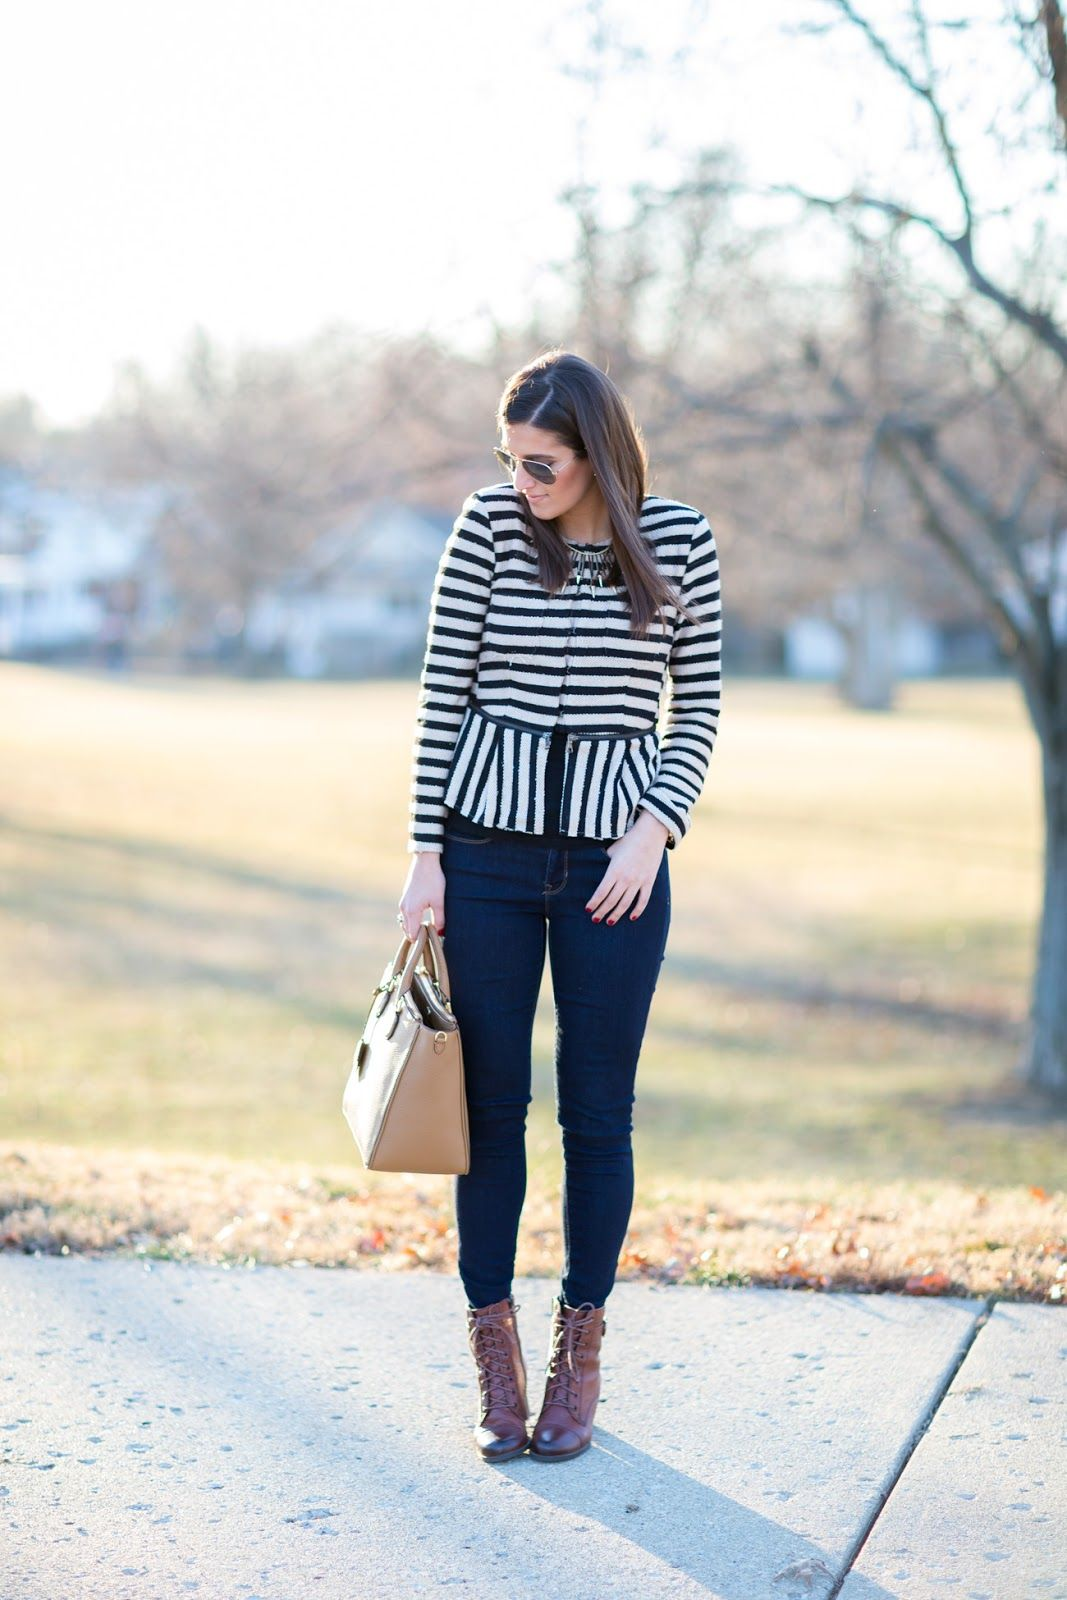 A Southern Drawl: Stripes & Gold Accents